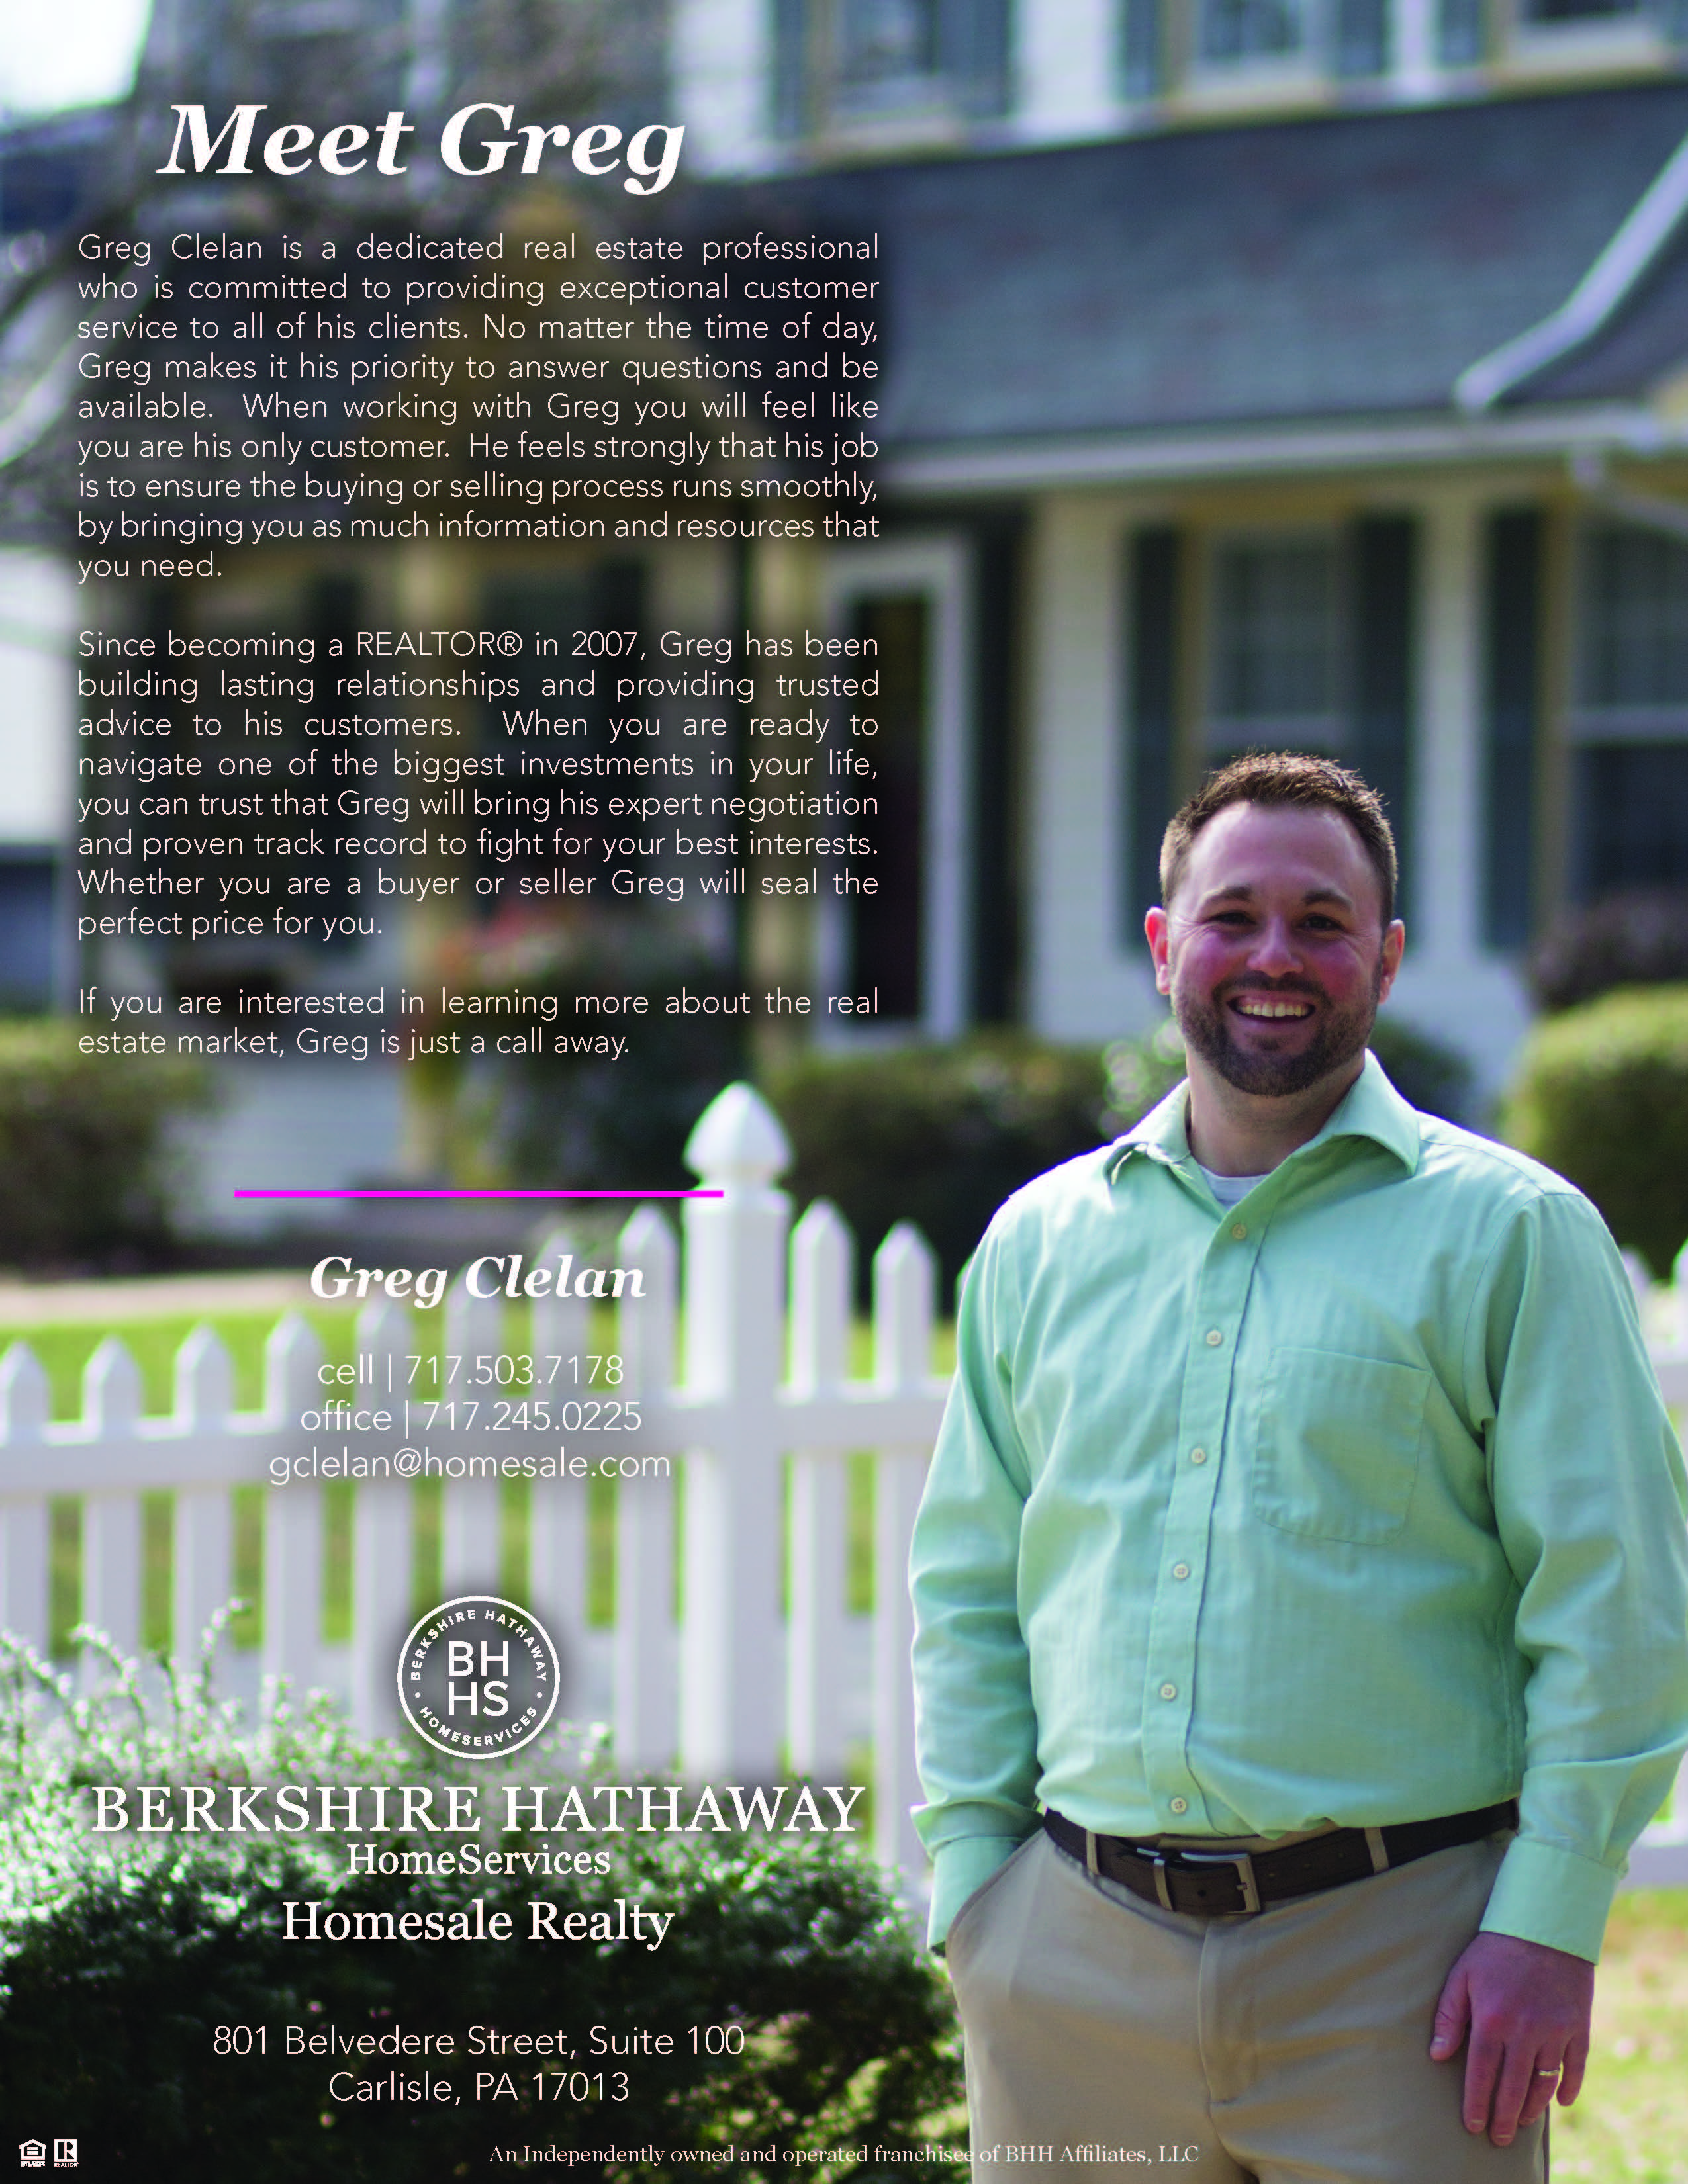 homesale virtual assistant with berkshire hathaway homeservices